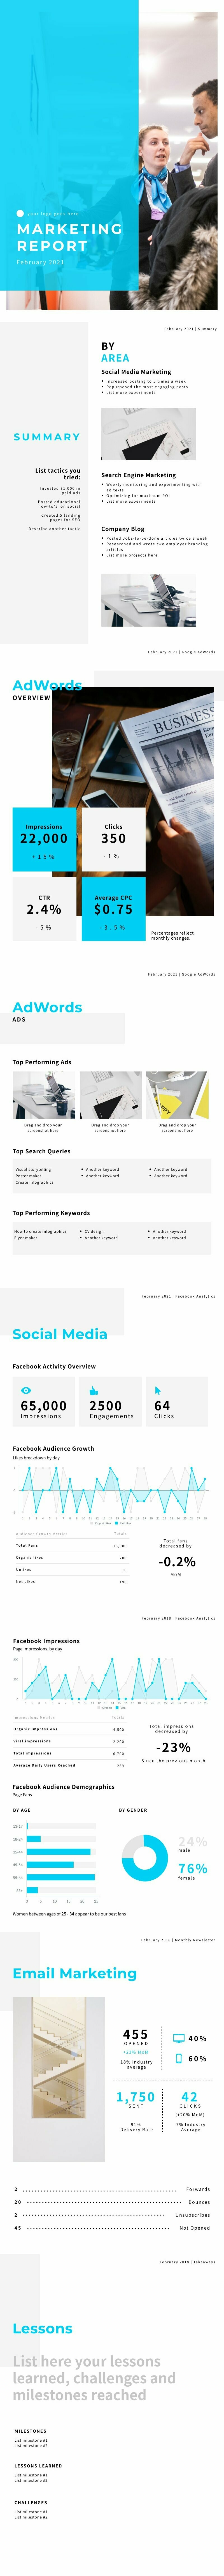 Marketing Overview Report